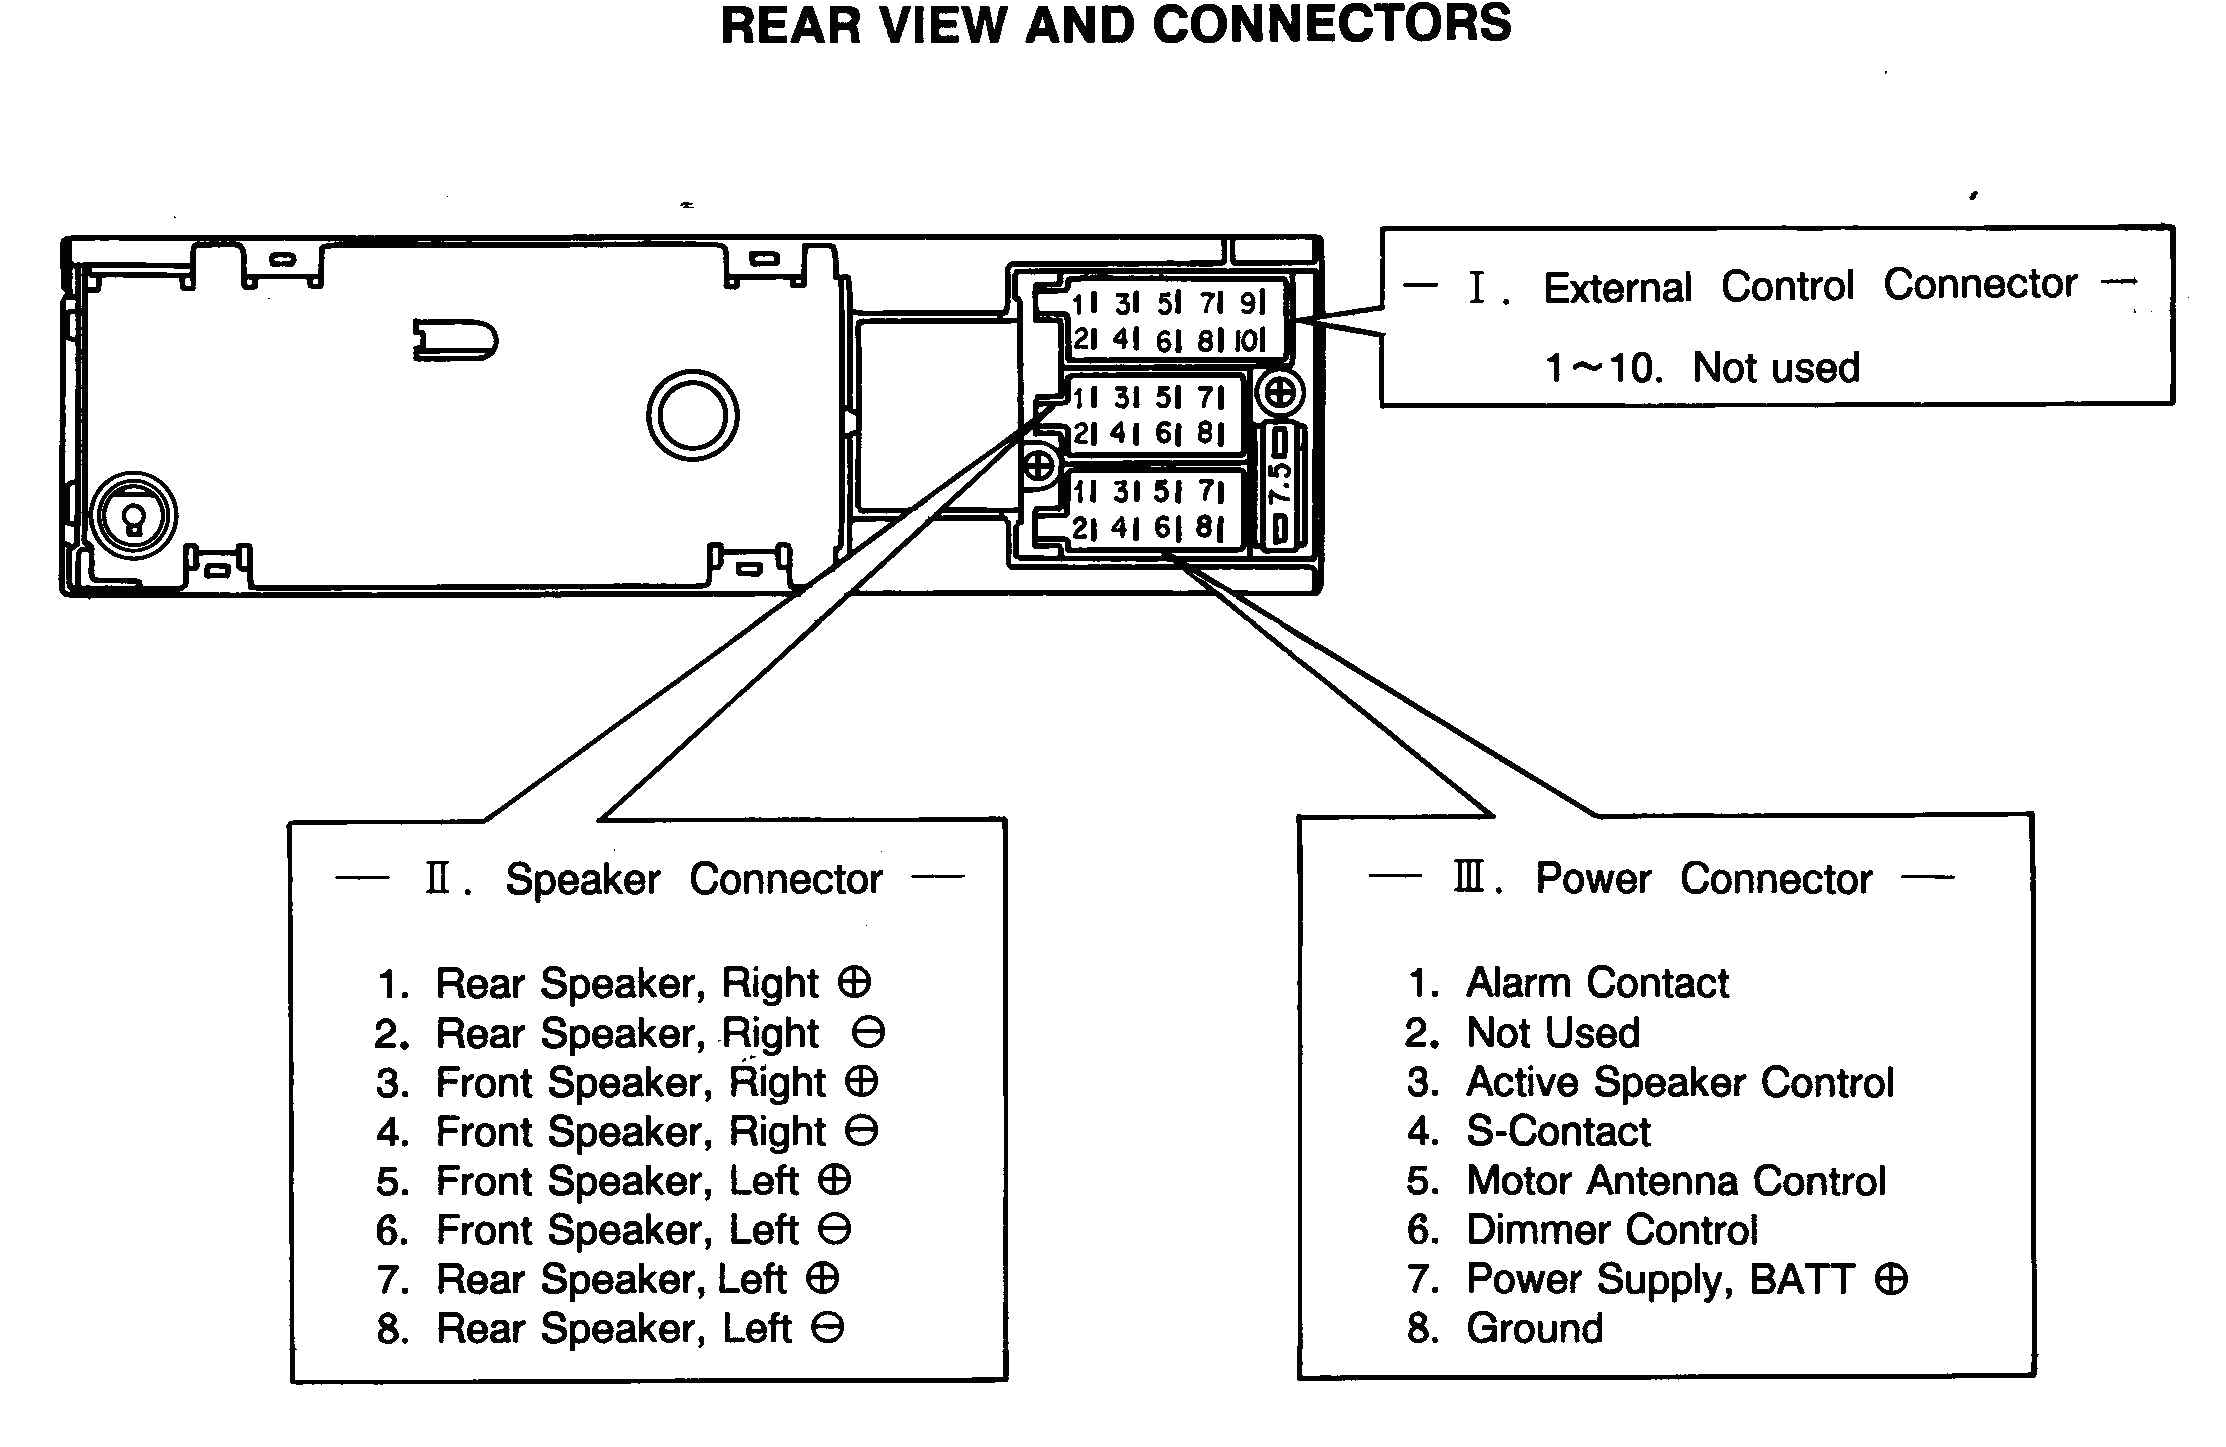 vw stereo wiring colours wiring diagram dat 2002 vw cabrio radio wiring diagram vw cabrio audio wiring